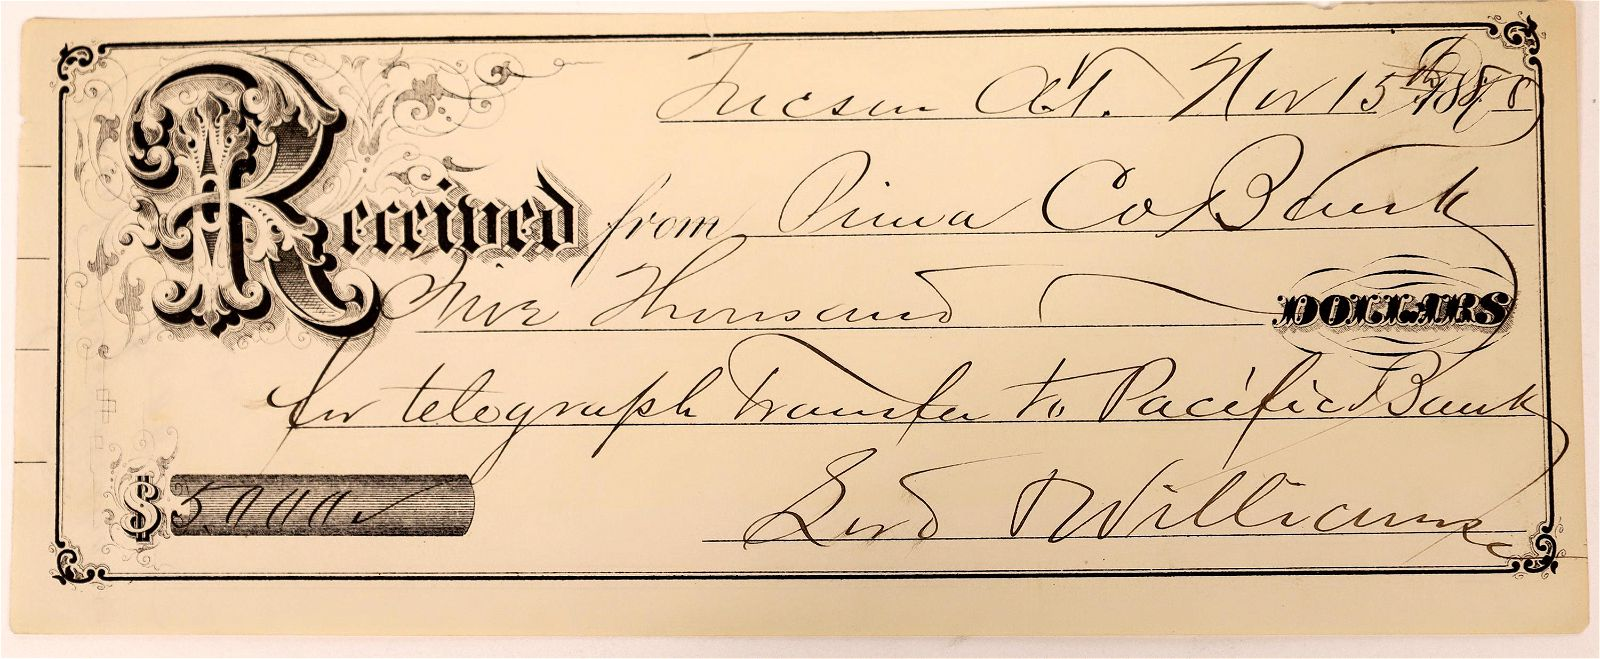 Tucson Check for Telegraph Transfer to a Pacific Bank